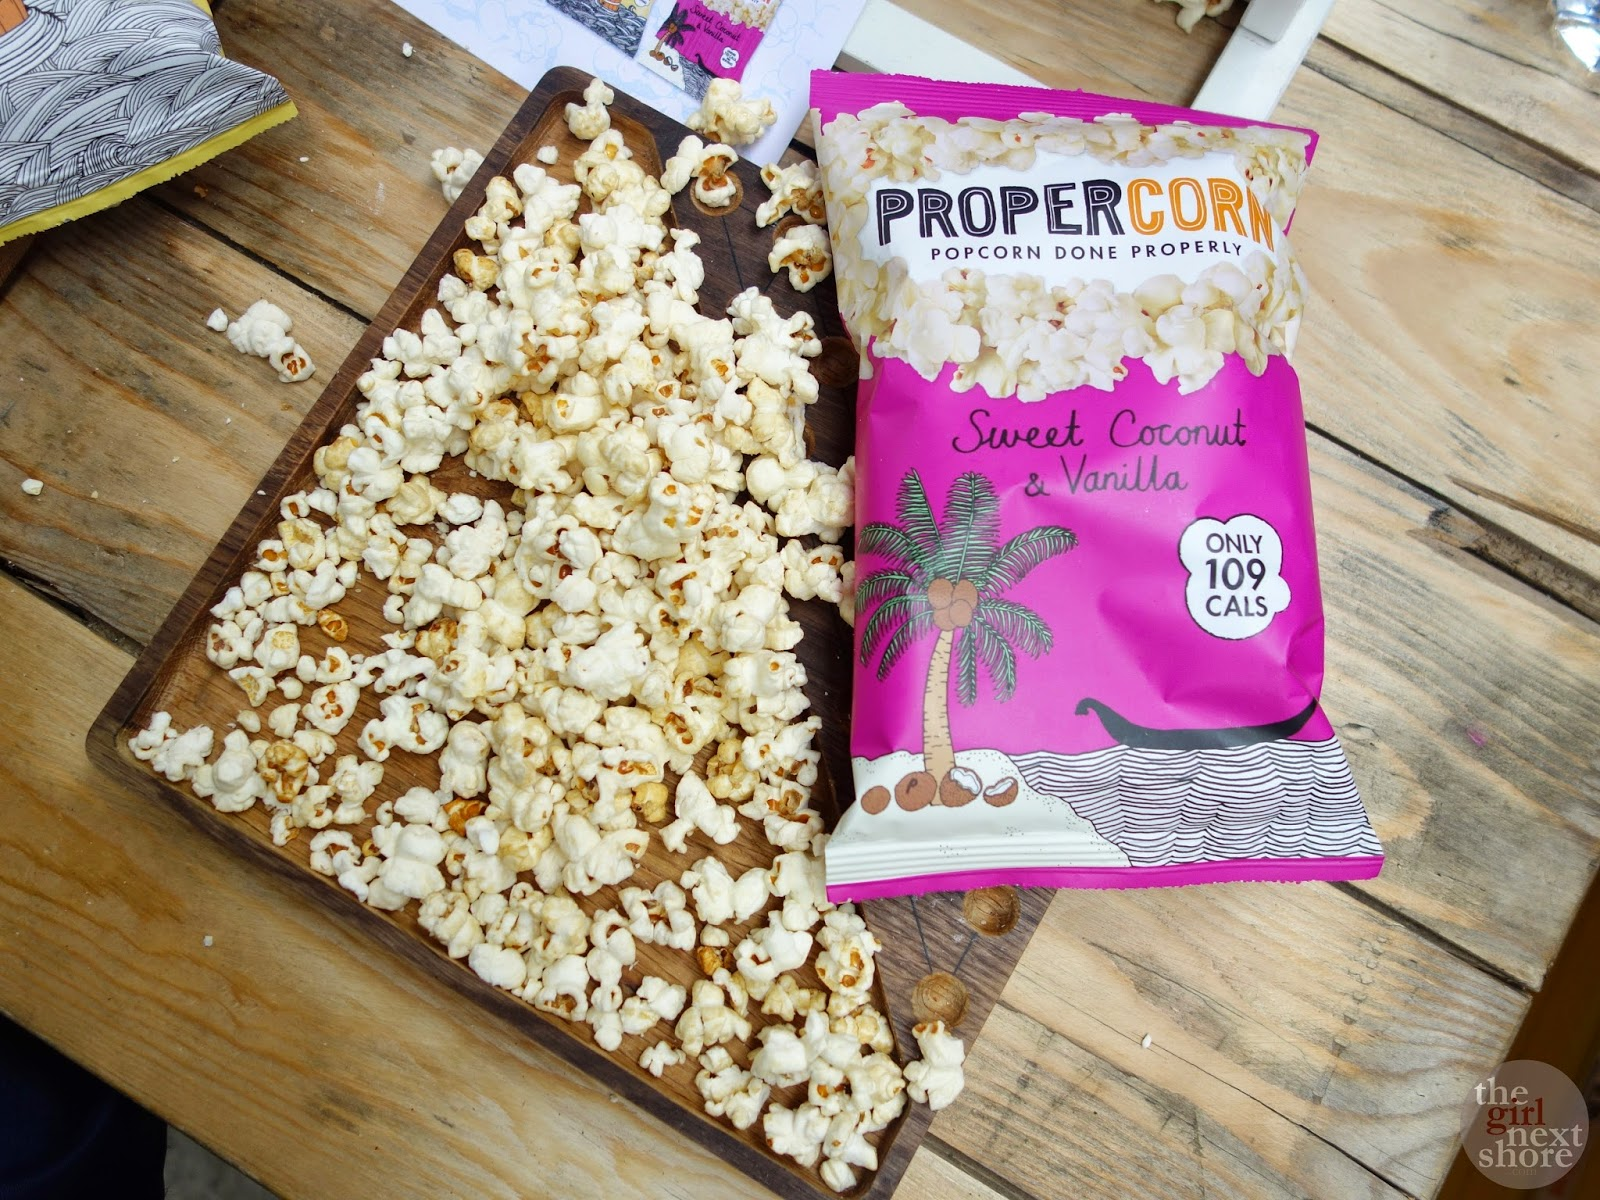 Propercorn at the London Coffee Festival